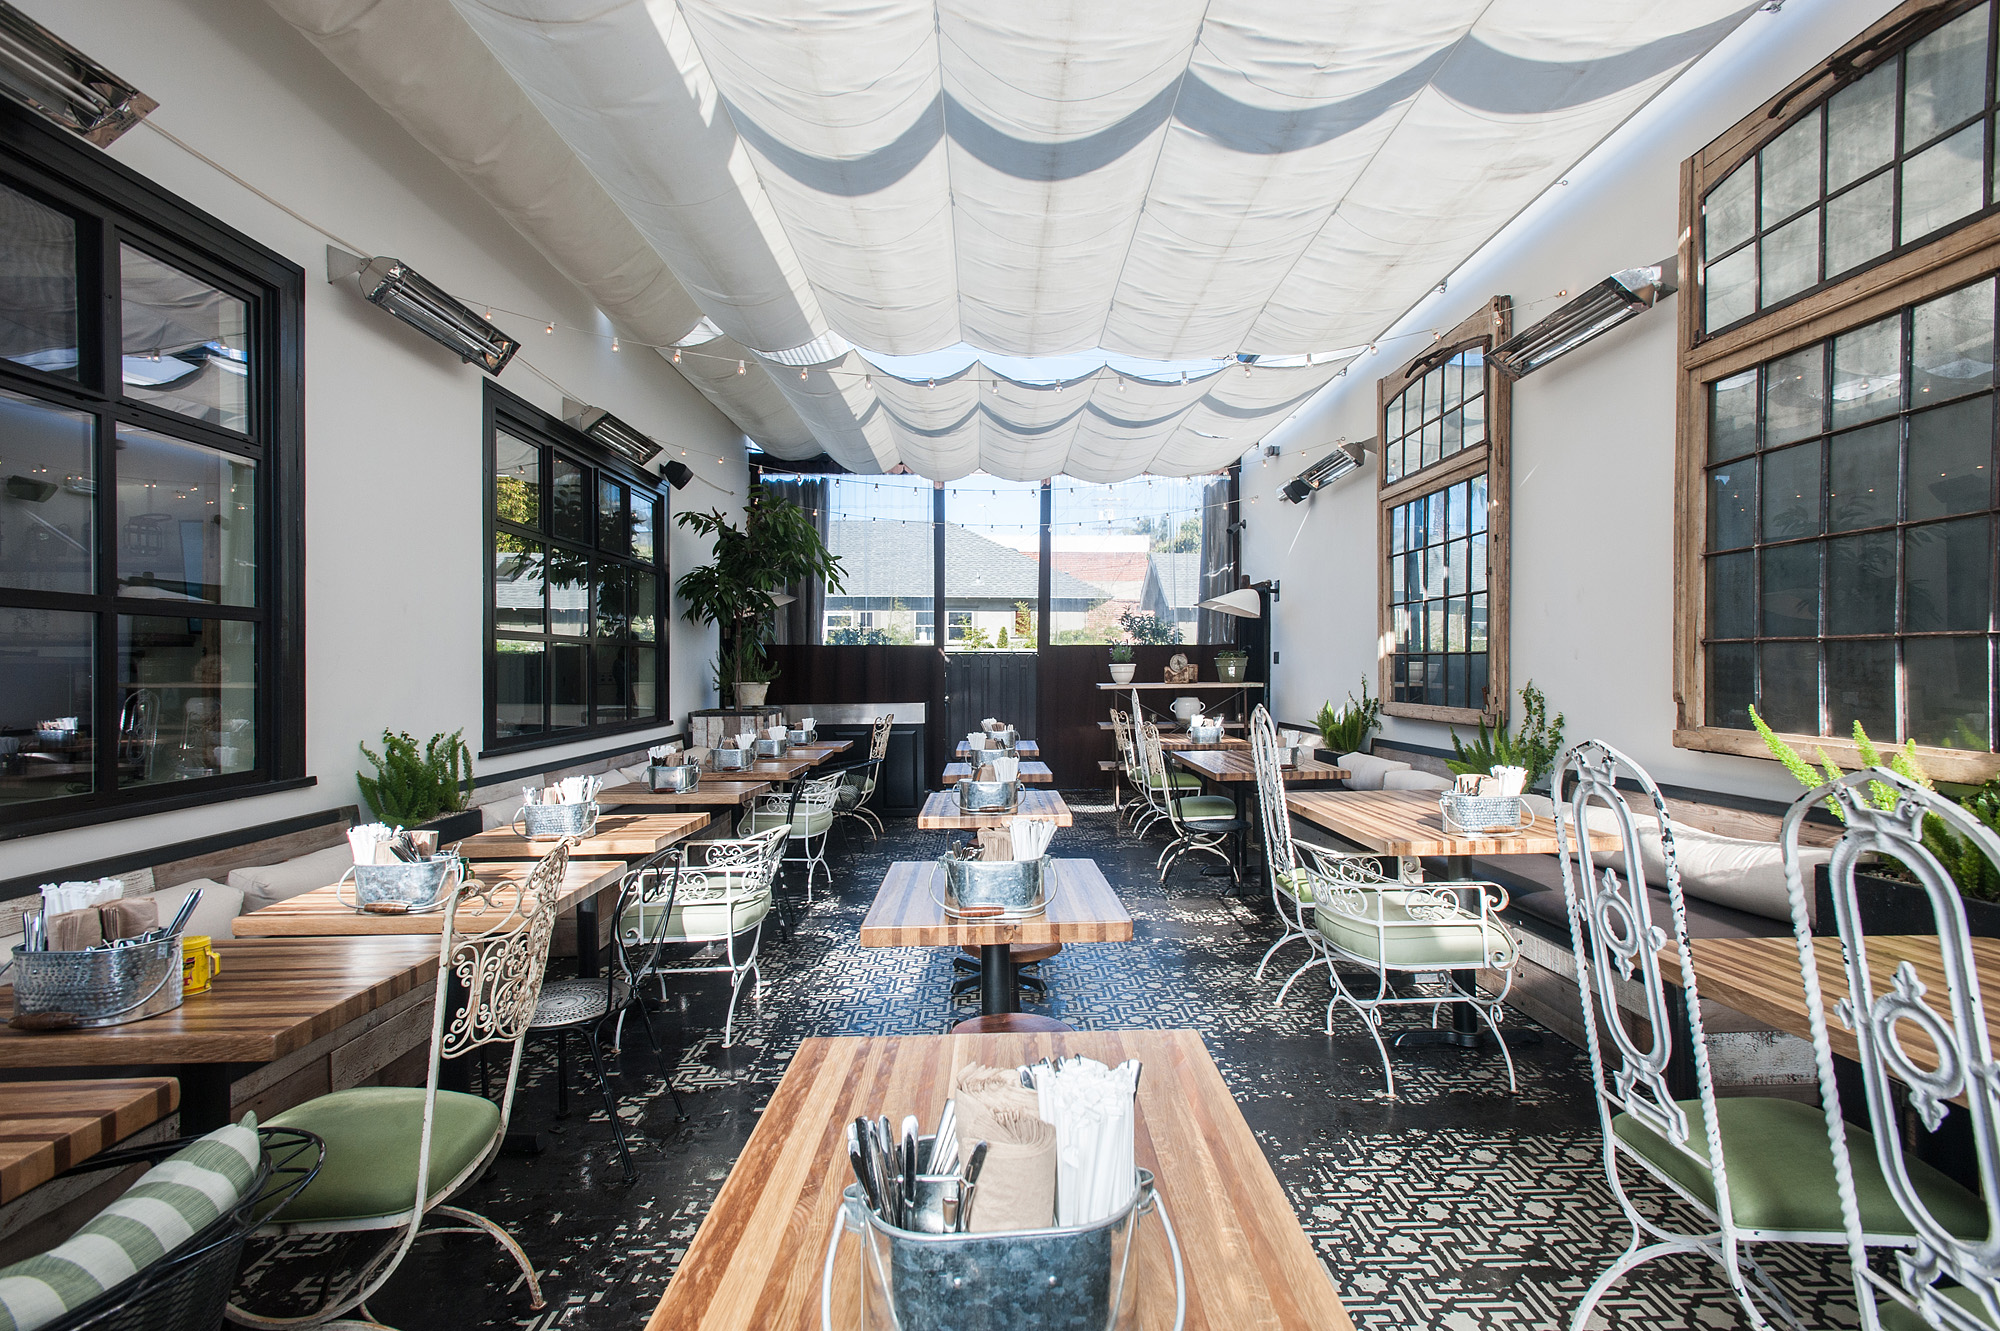 Greenleafs Abbot Kinney Spot Is A Sanctuary For The Salad Obsessed